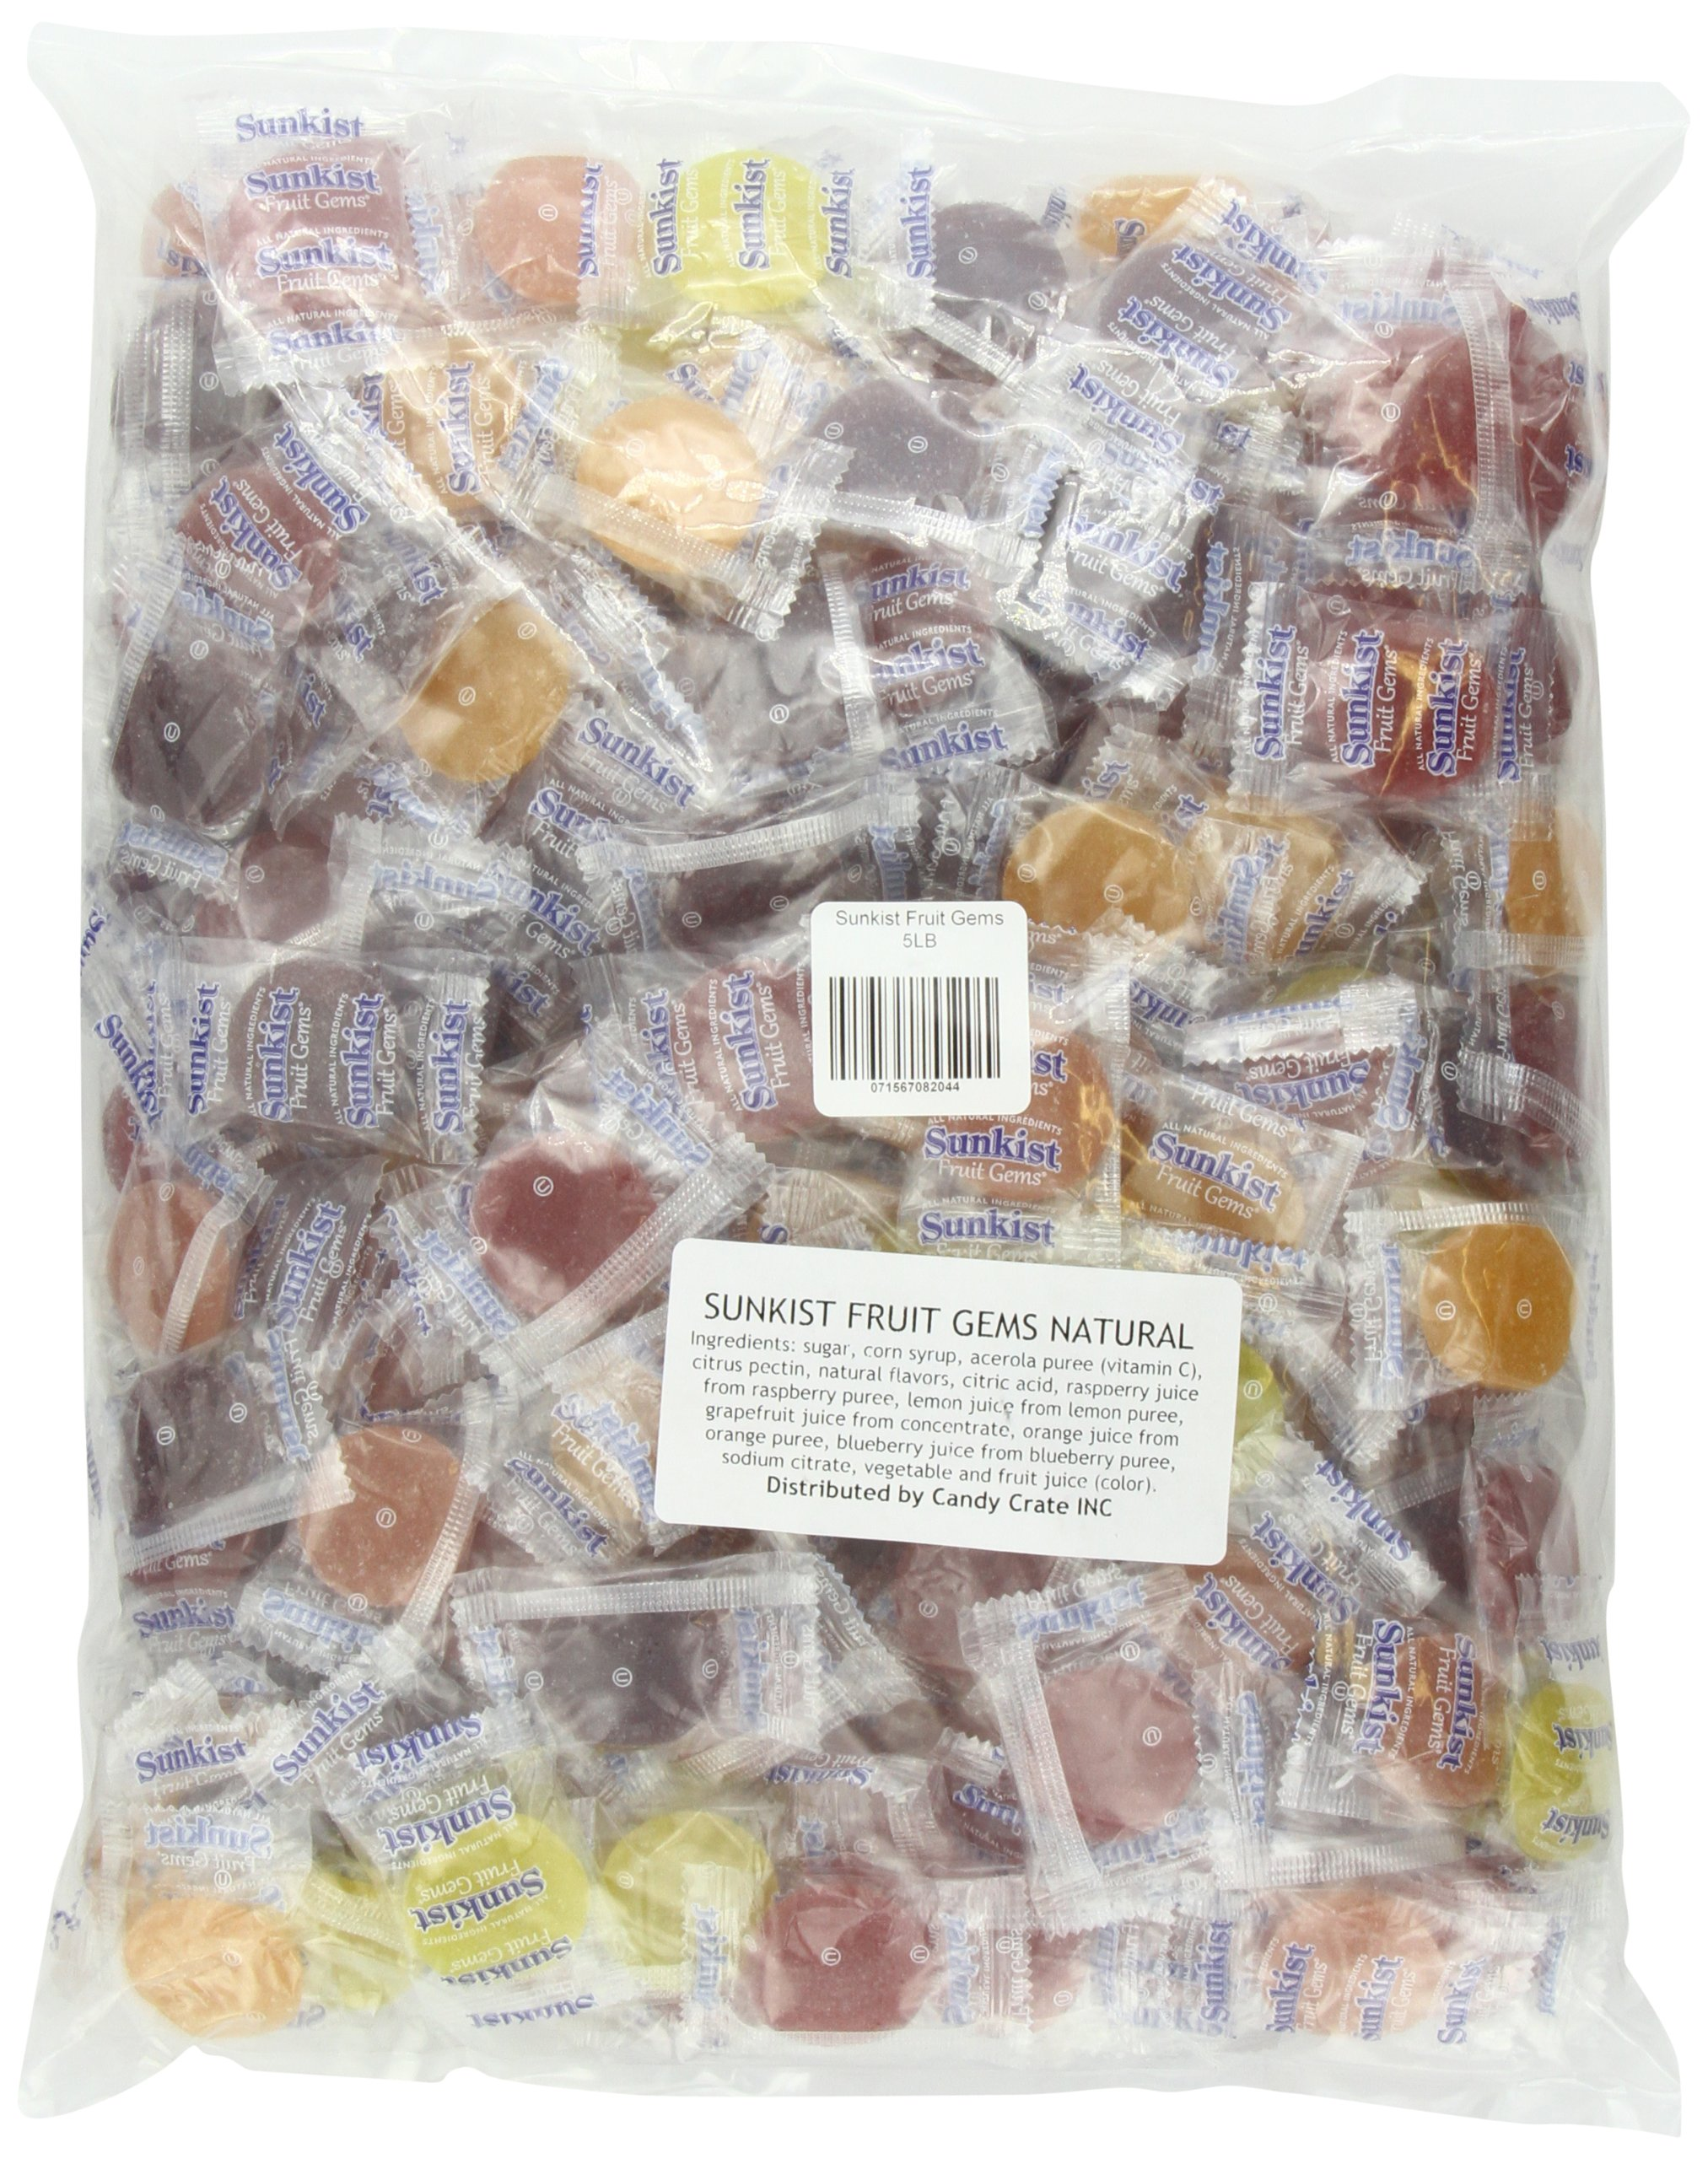 Sunkist Fruit Gems, 5-Pound Bag by Candy Crate